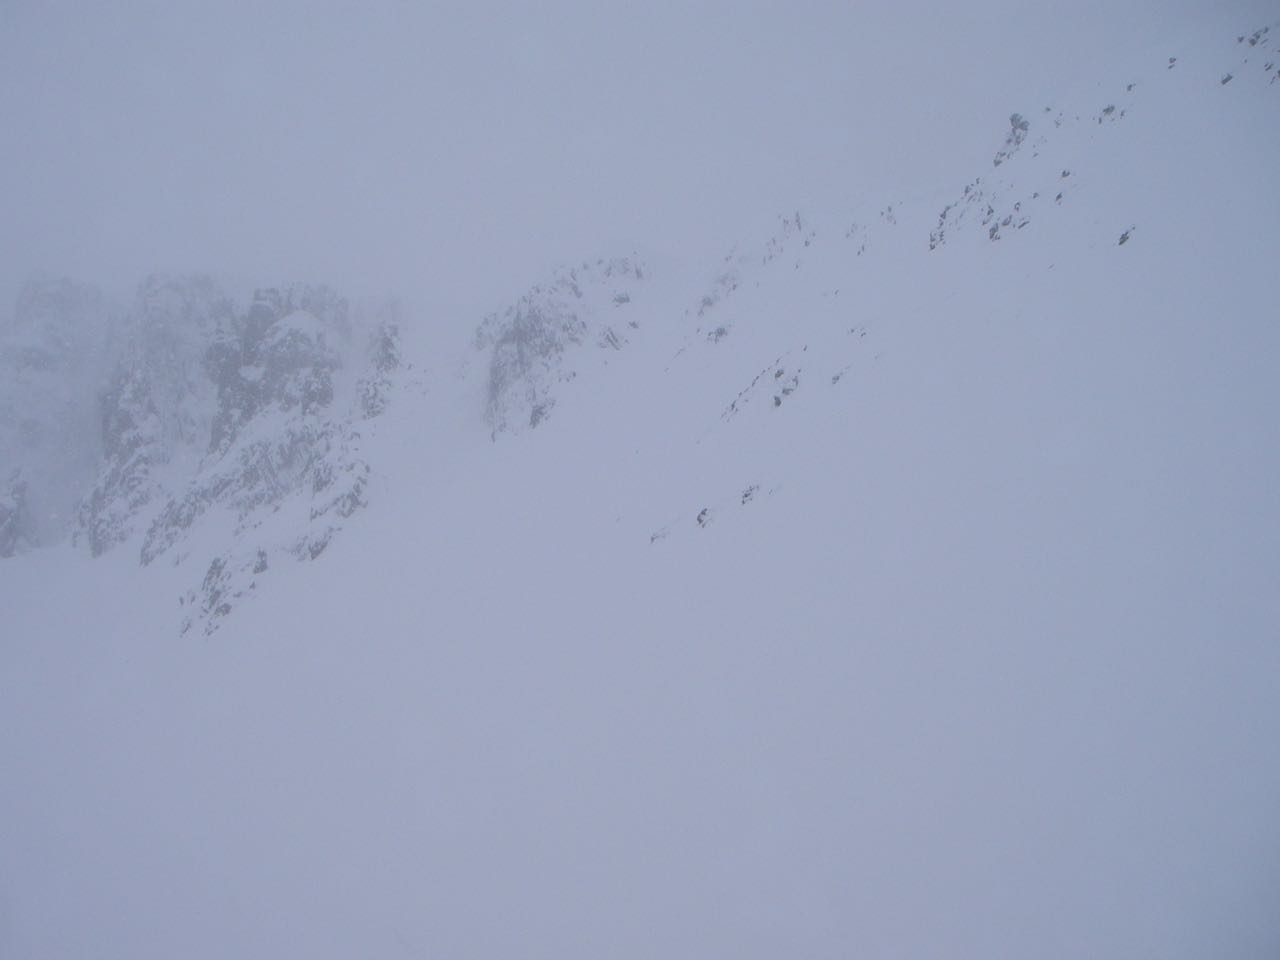 The lower part of the rim of the corrie - hard to see how much of a cornice has developed through the mirk